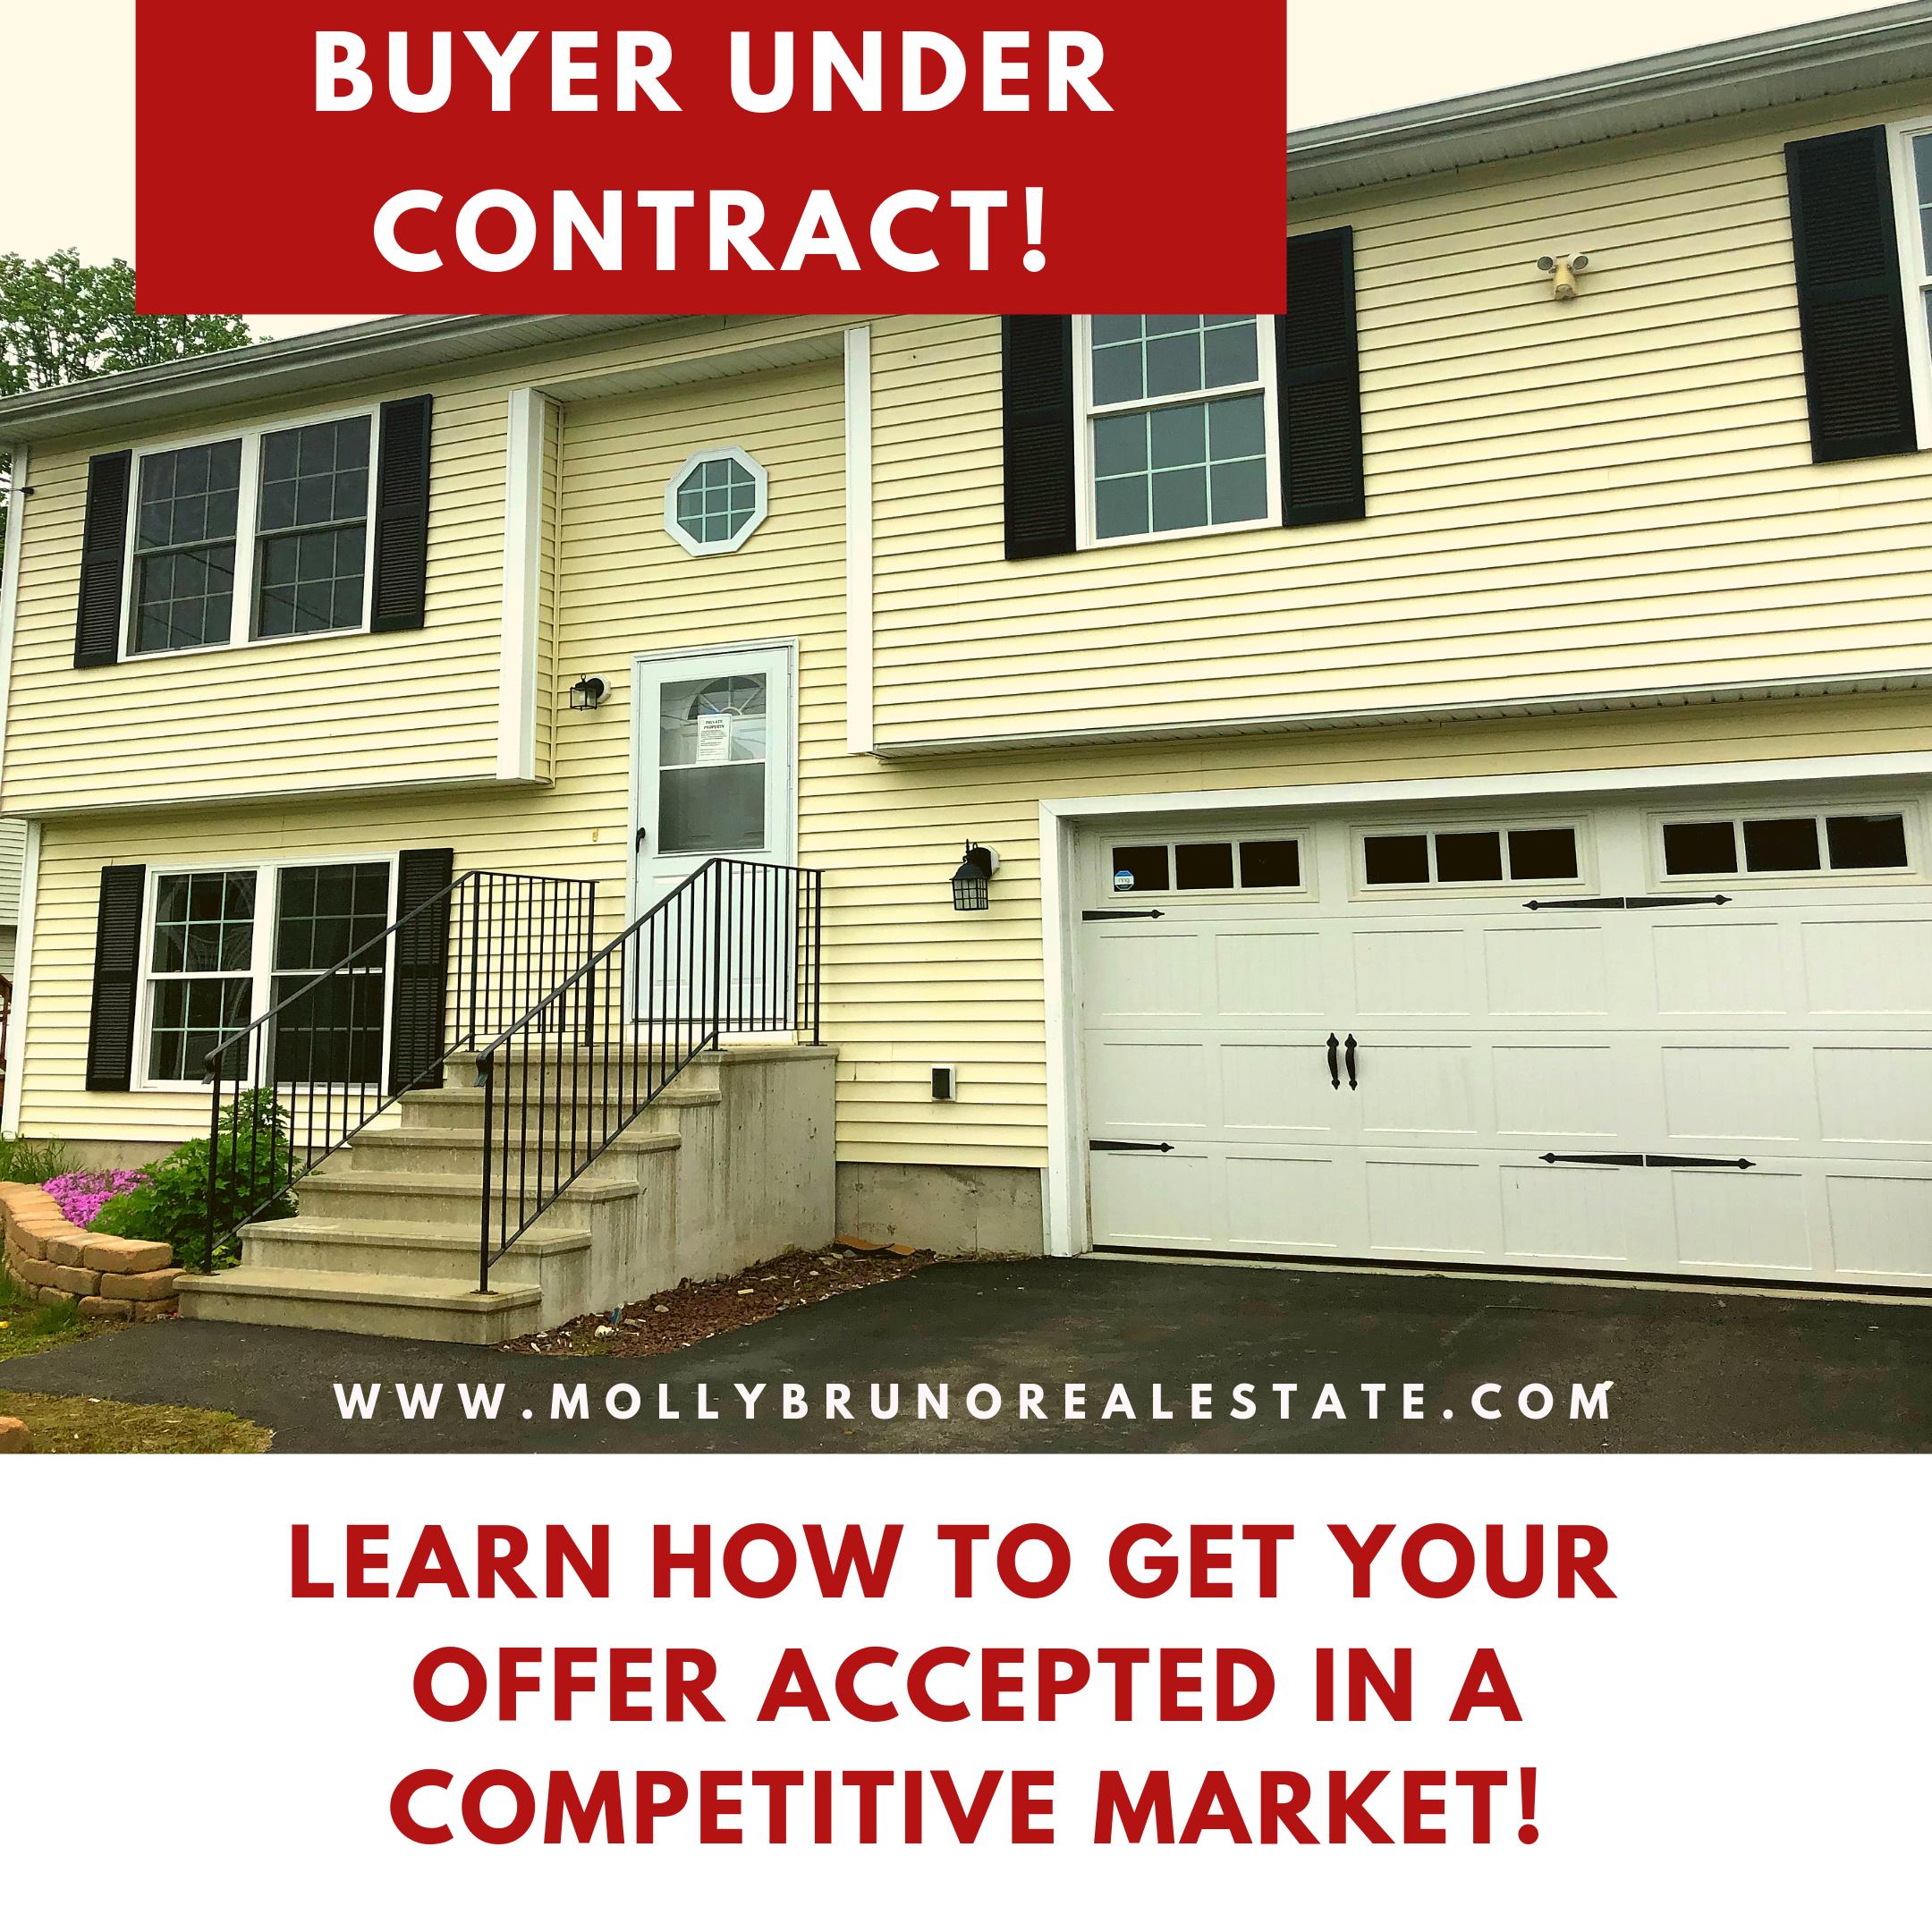 Get your offer accepted in a seller's market! Don't lose out on buying a home. Contact Molly Bruno for a buyer's consultation call/txt 860.961.8627.